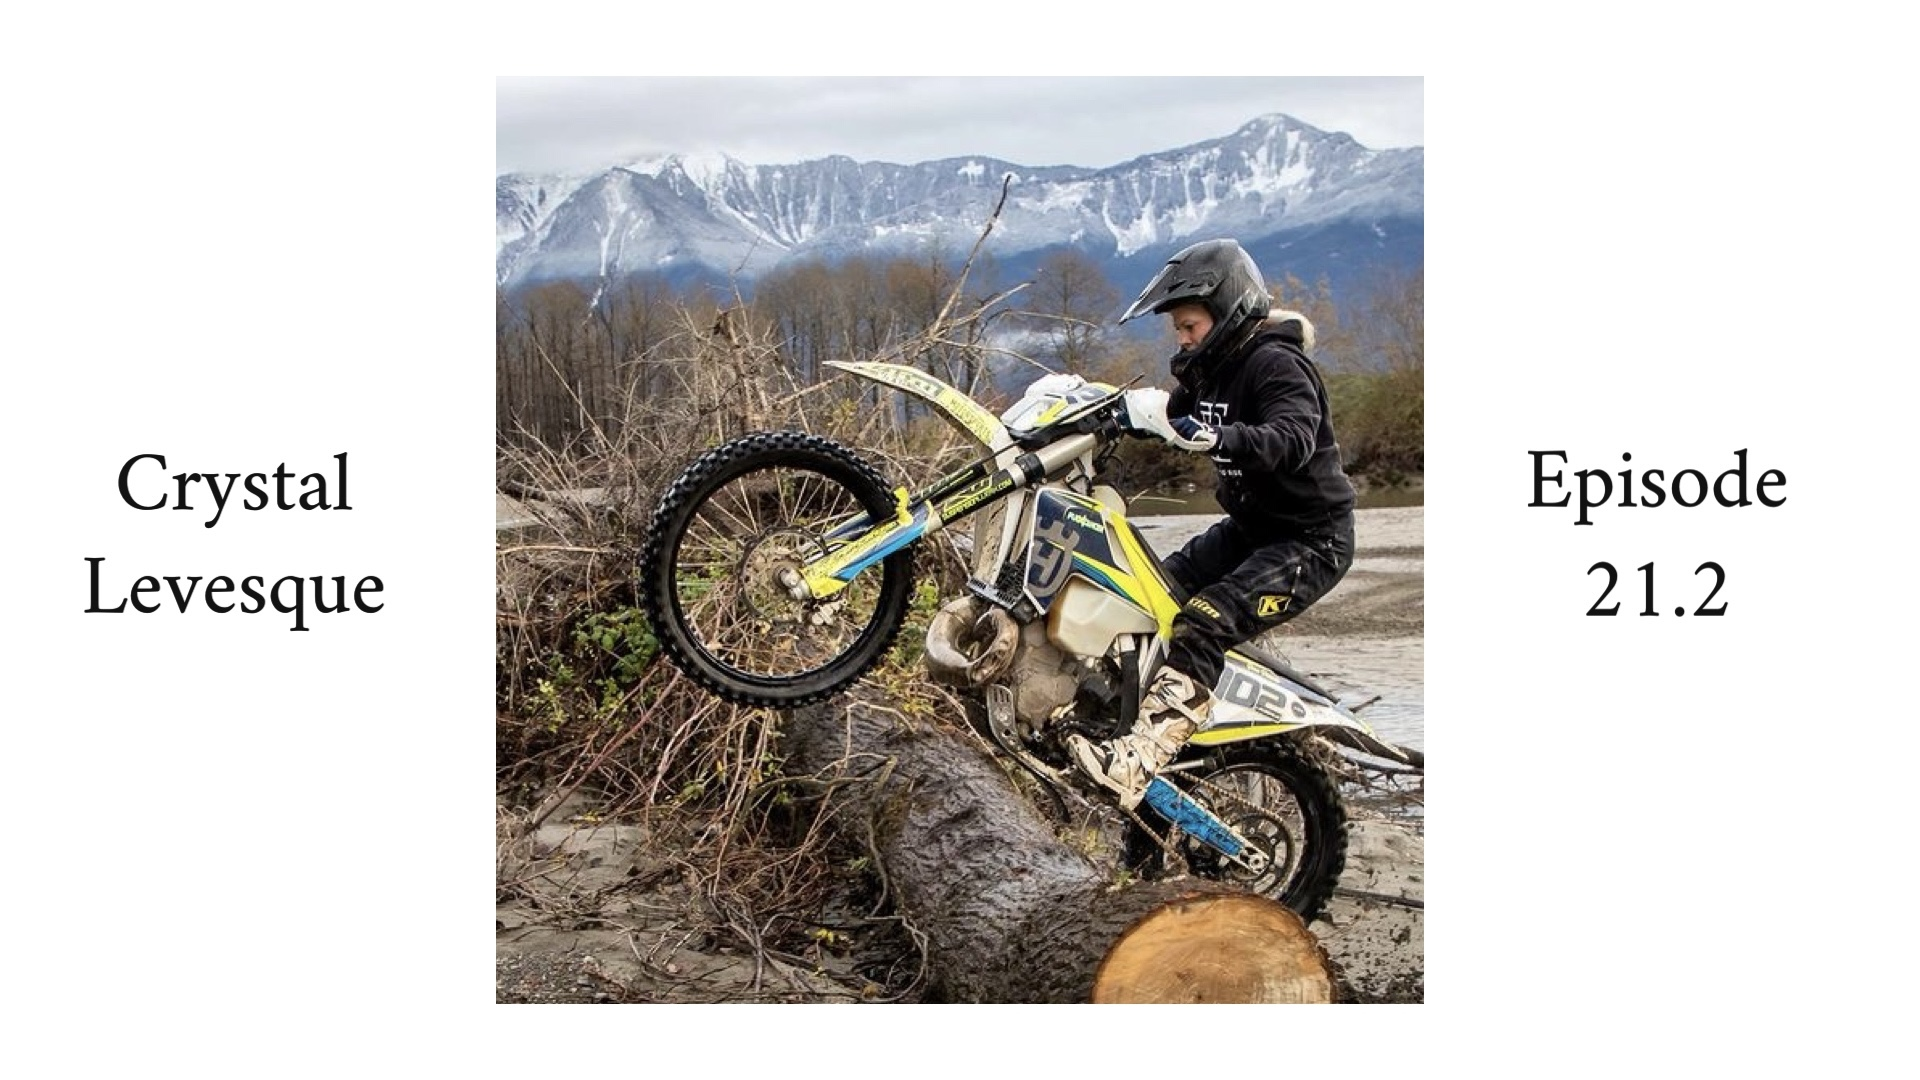 Woman enduro rider riding over a log with mountains in the background.